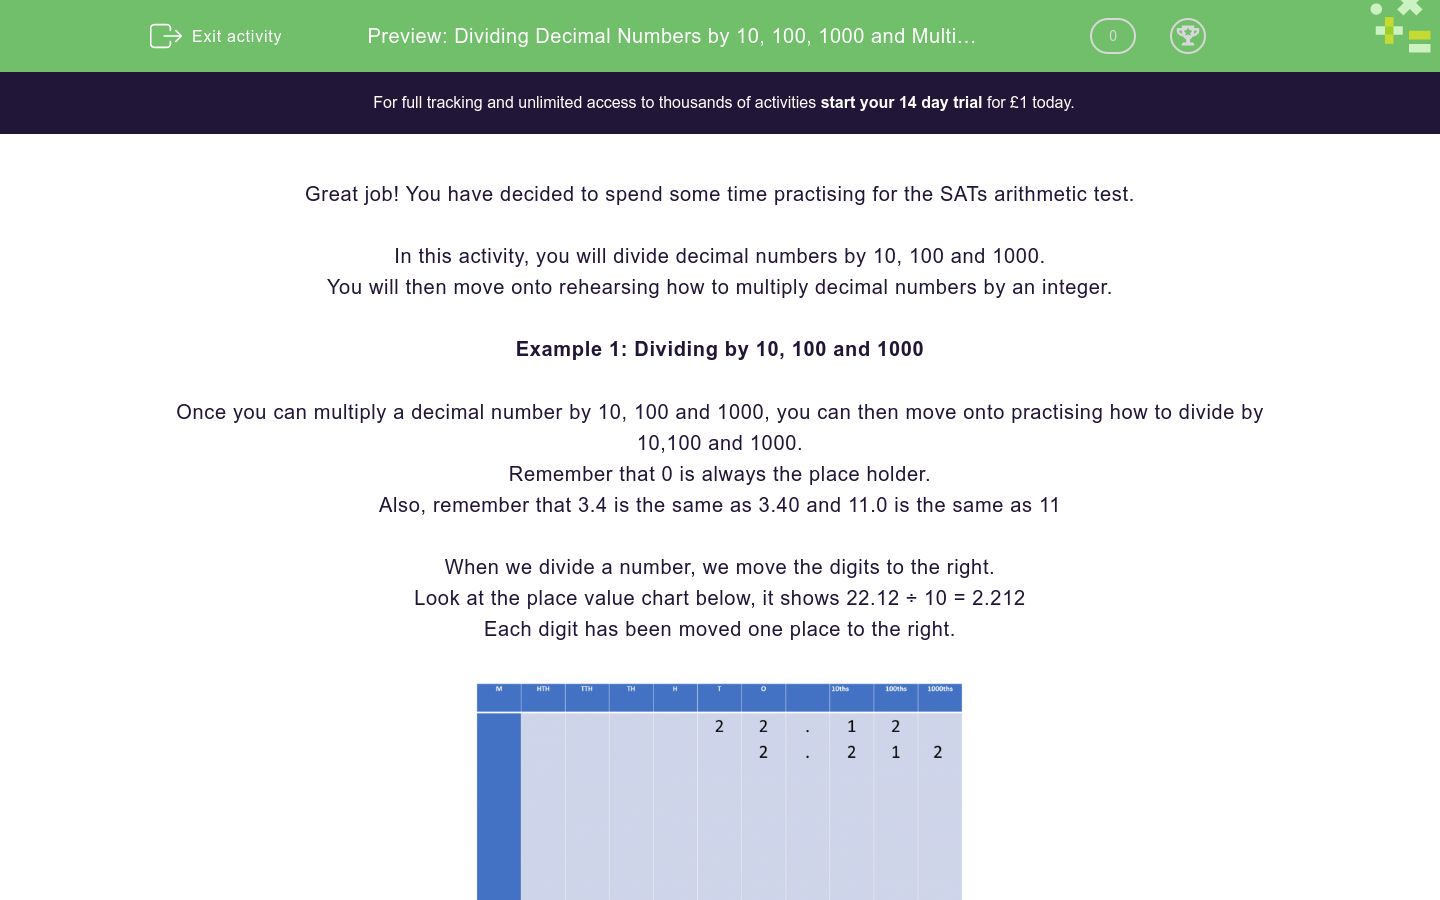 'Dividing Decimal Numbers by 10, 100, 1000 and Multiplying by an Integer' worksheet